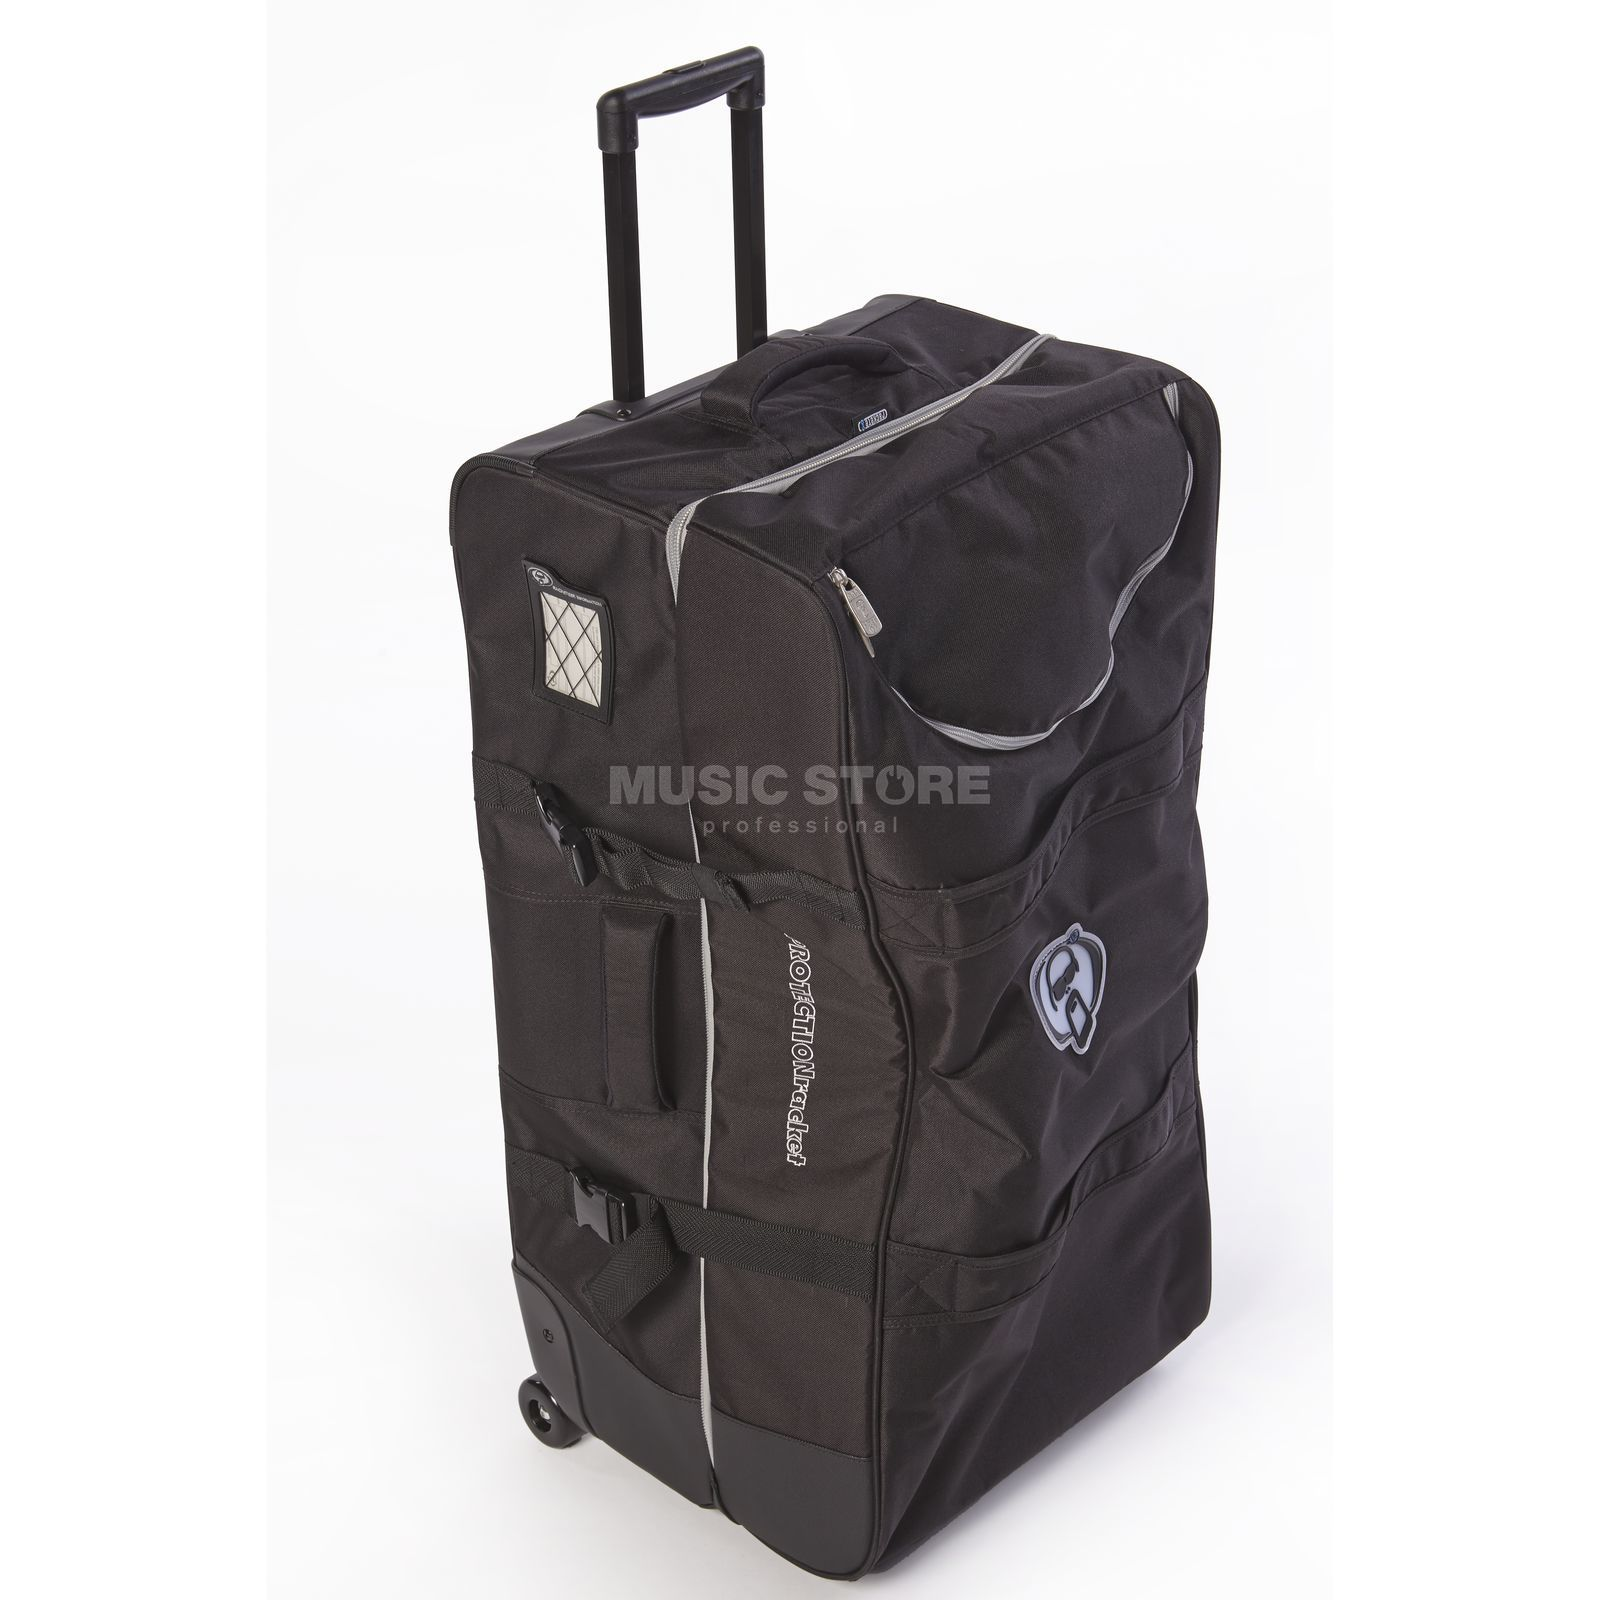 Protection Racket Reistetasche / Suitcase 4277-46 Product Image